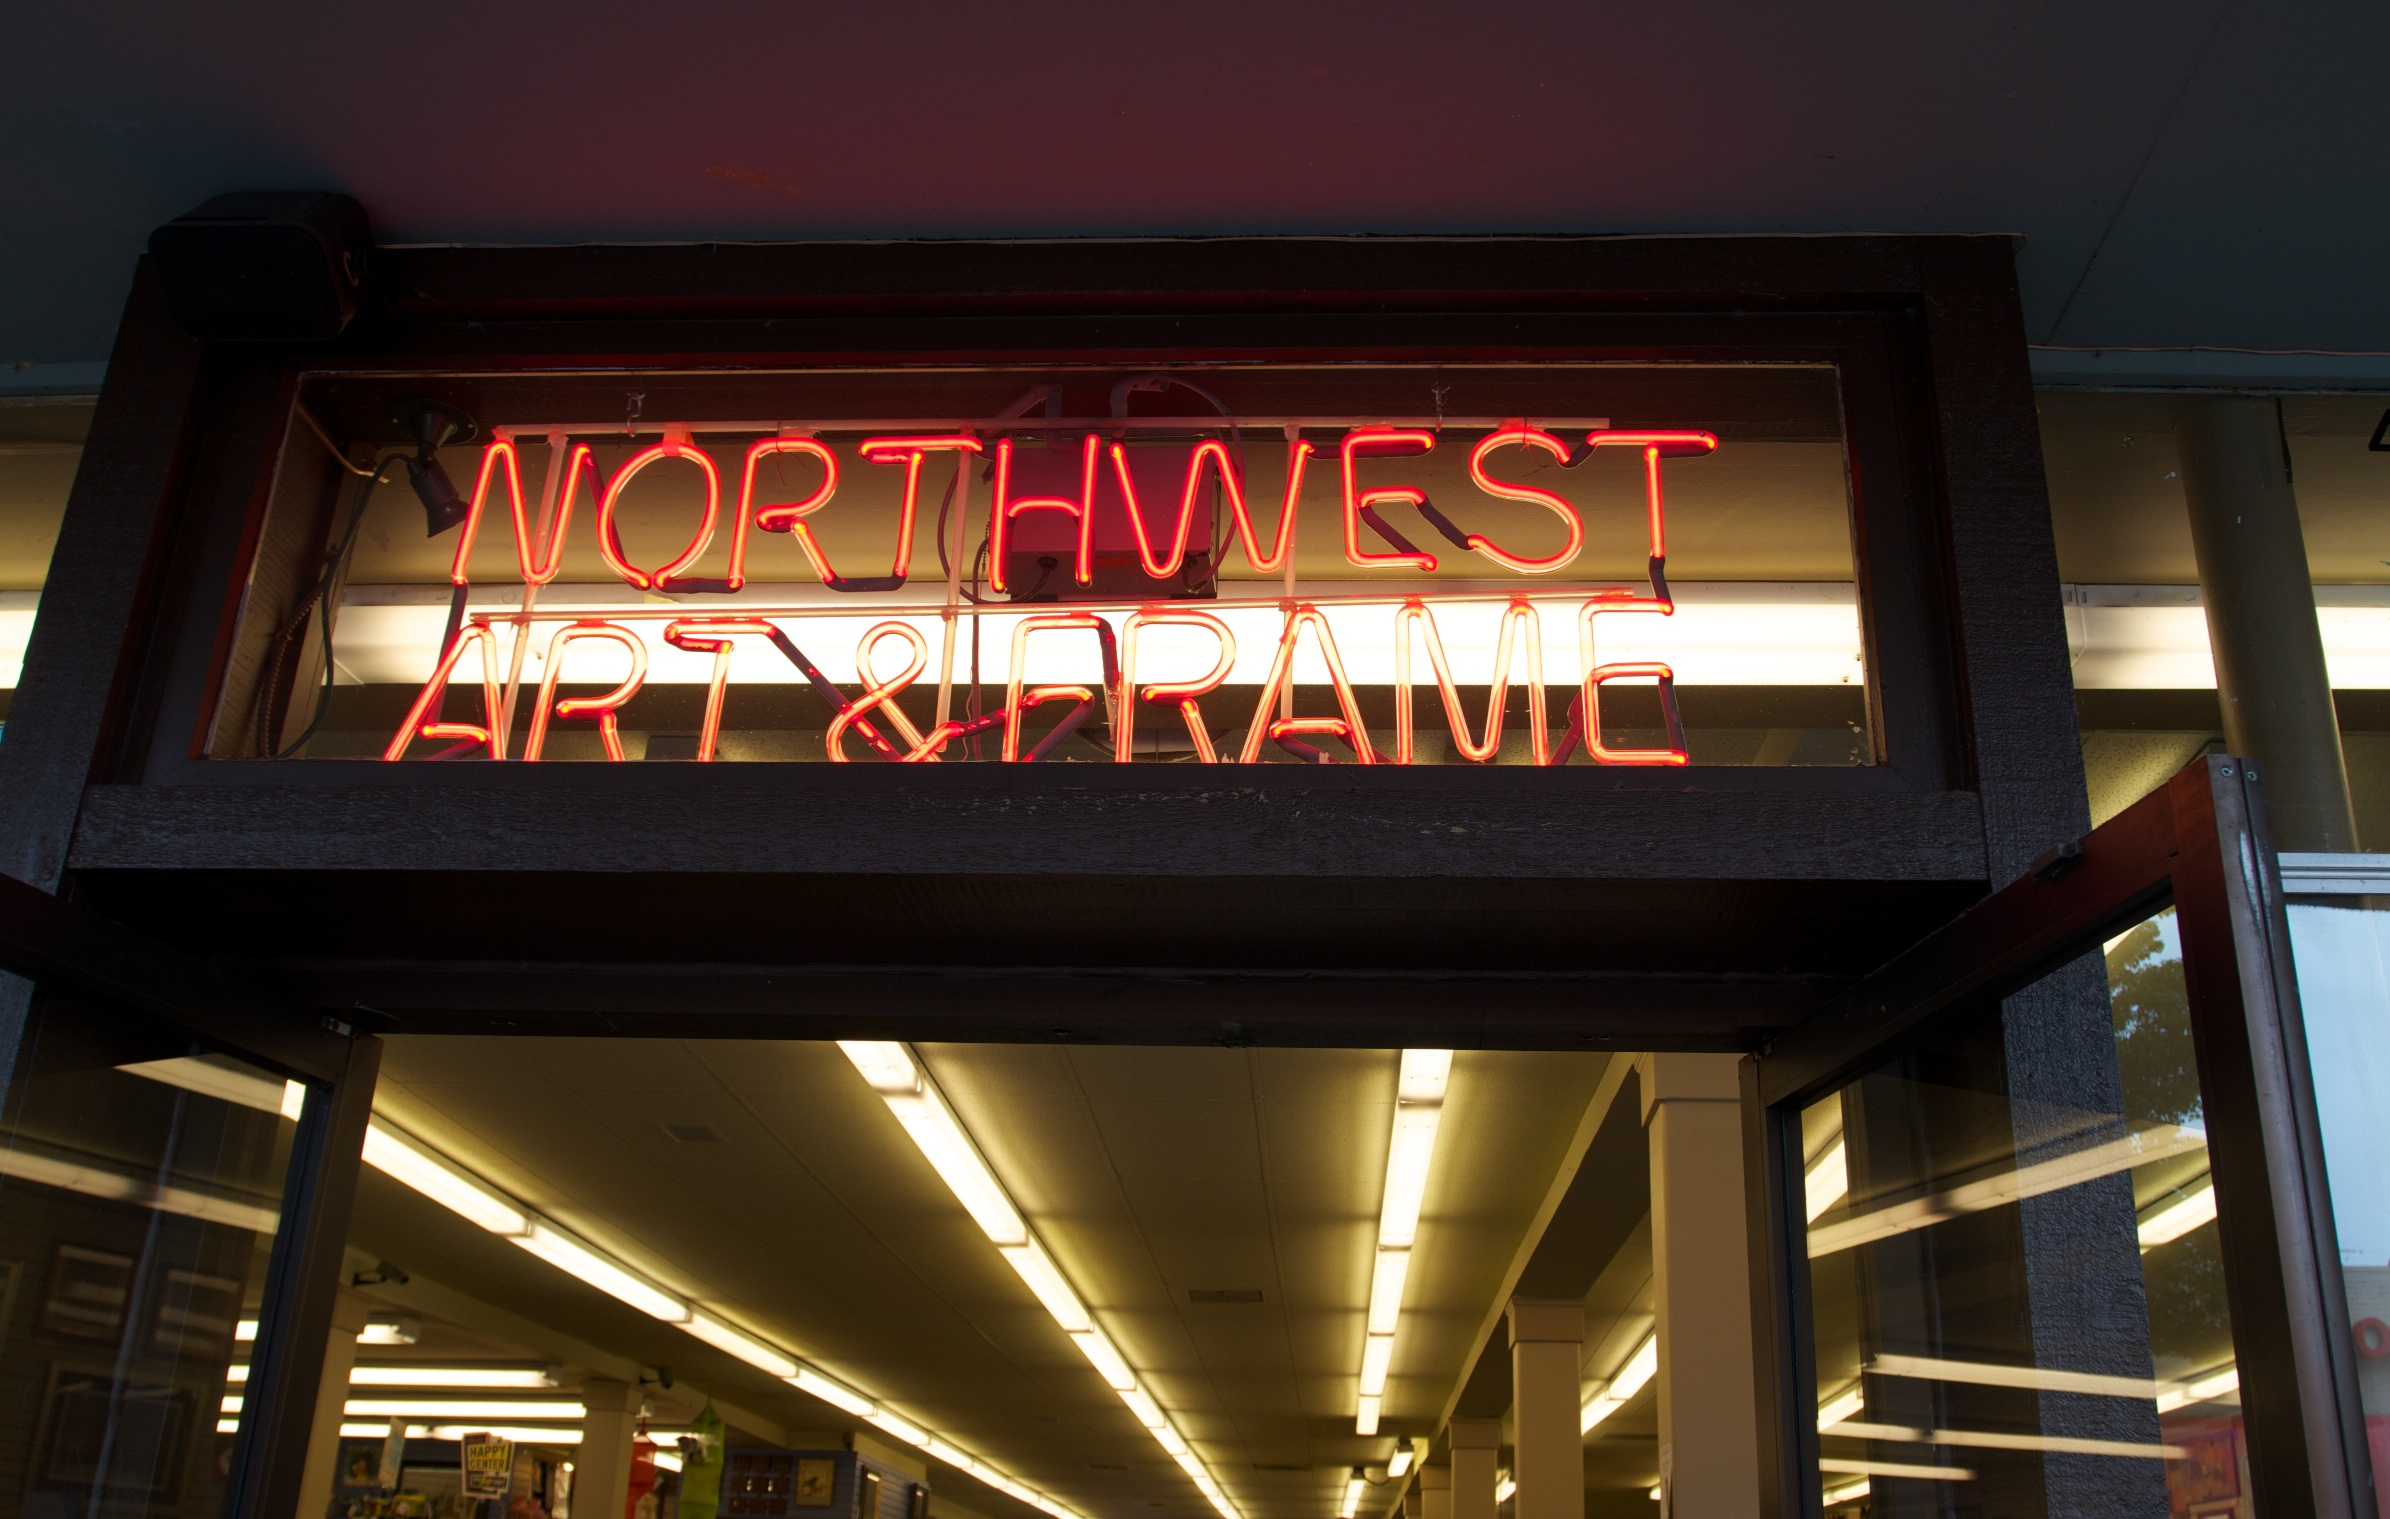 NW Art & Frame neon sign